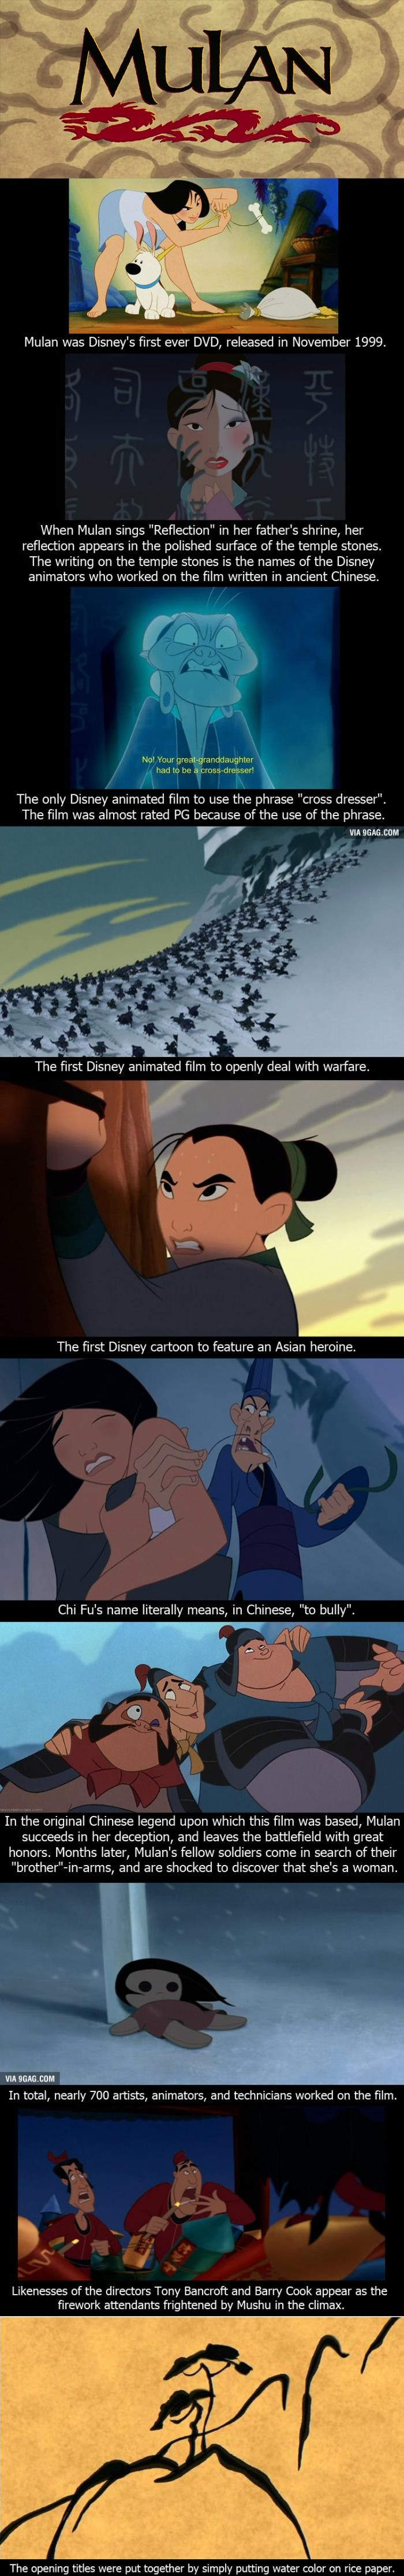 10 Facts About the Mulan movie